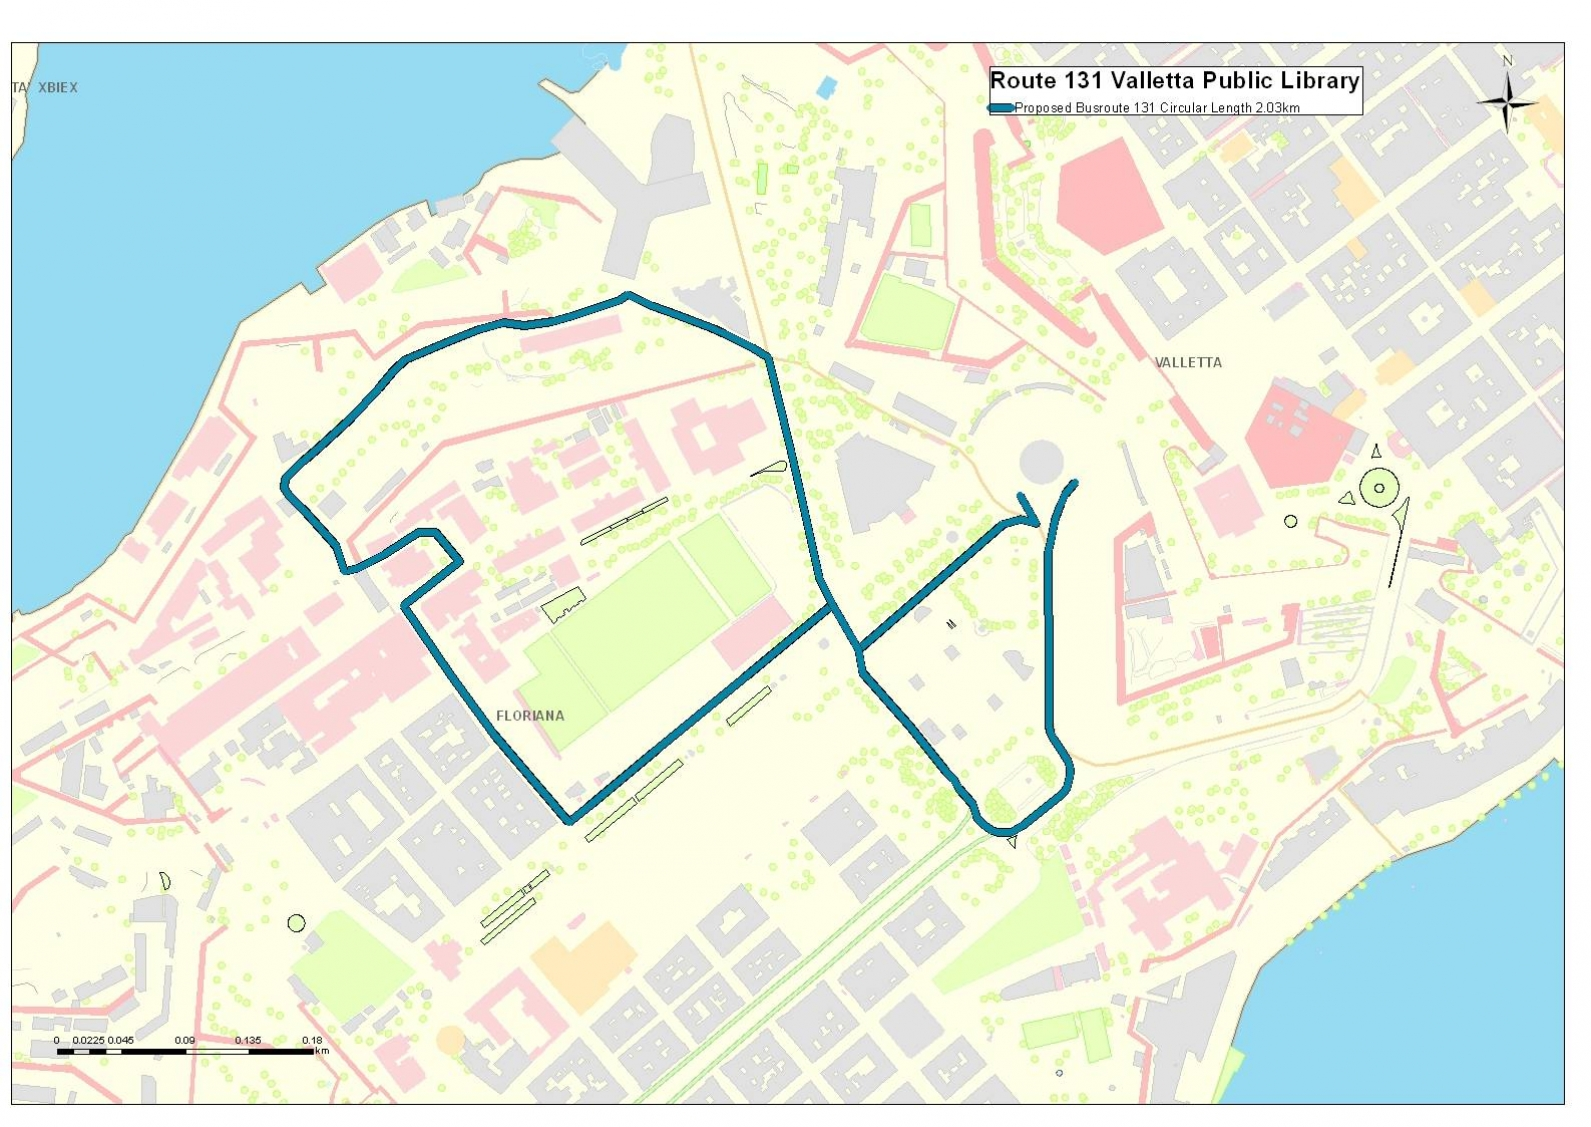 Land-current-network-routes-and-schedules-Valletta-Park-and-Ride-4